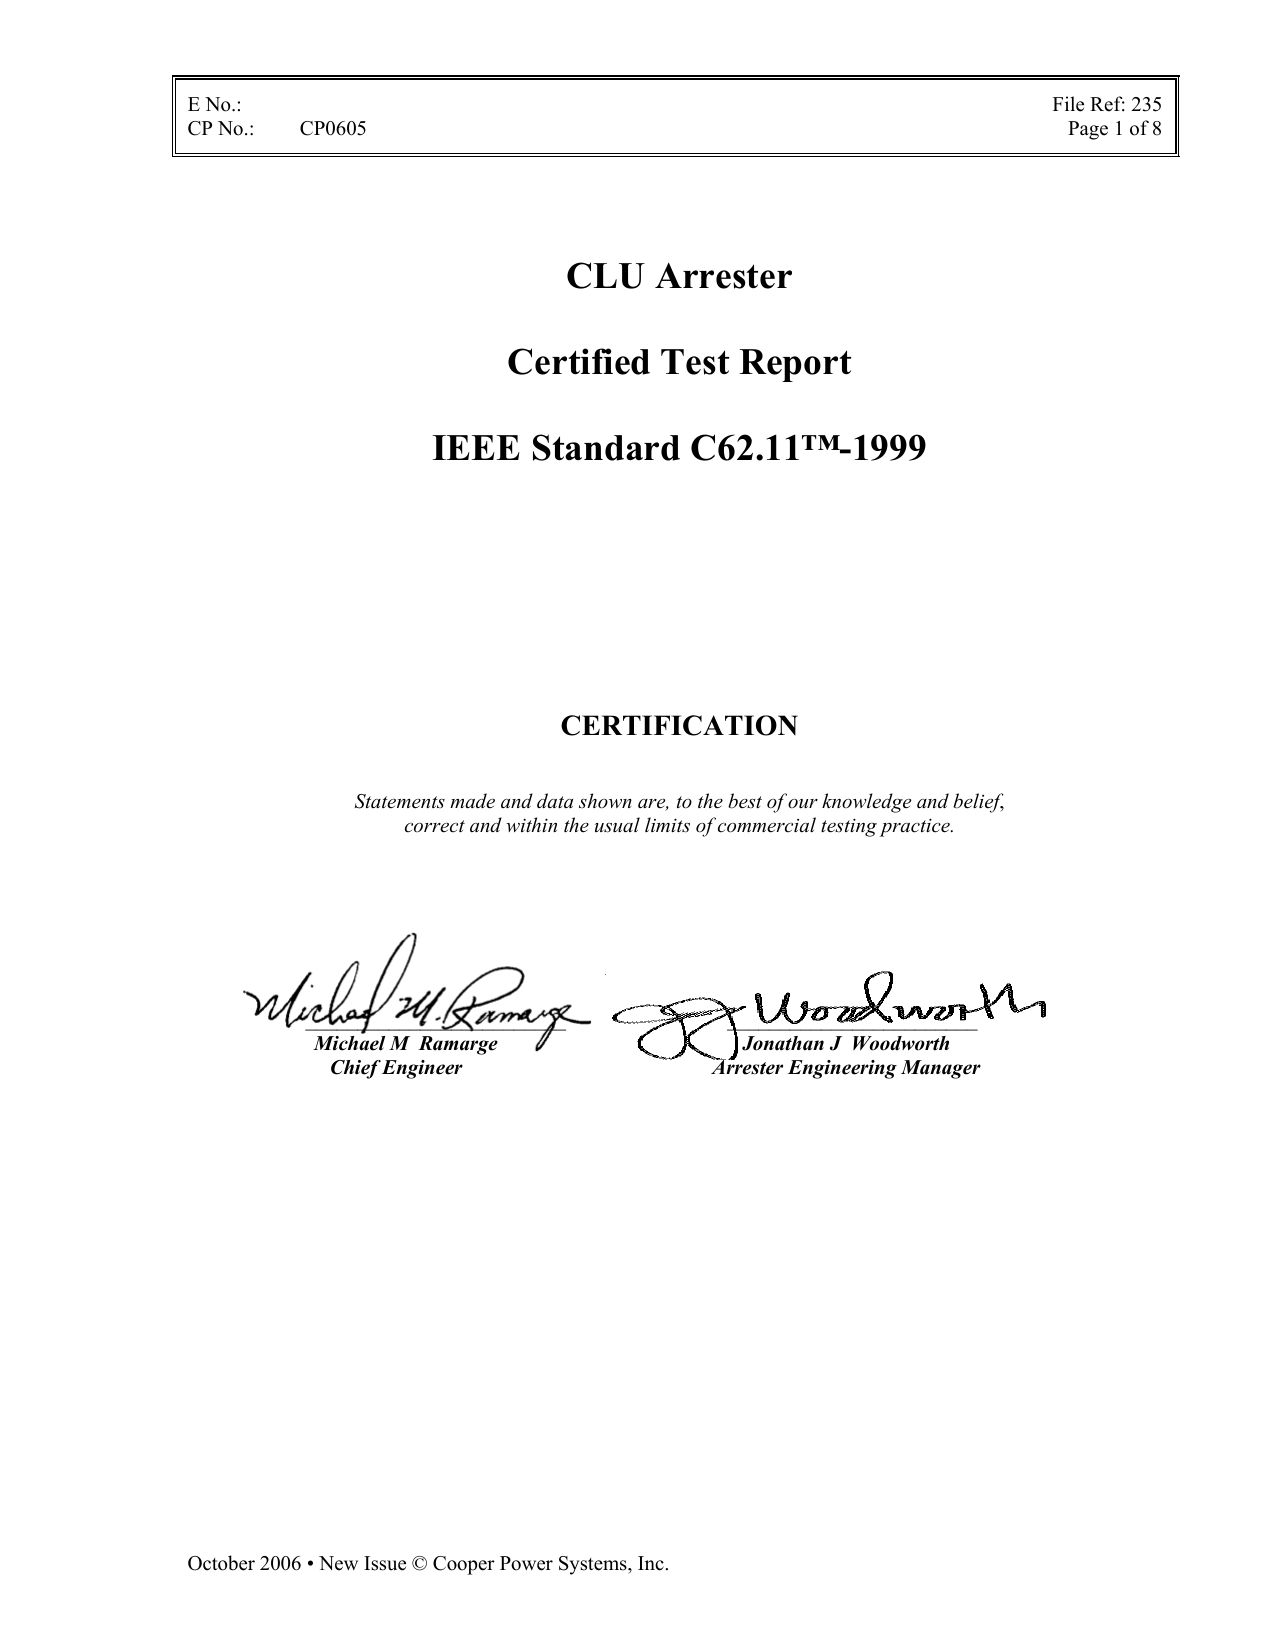 Clu Arrester Certified Test Report Ieee Standard C6211 1999